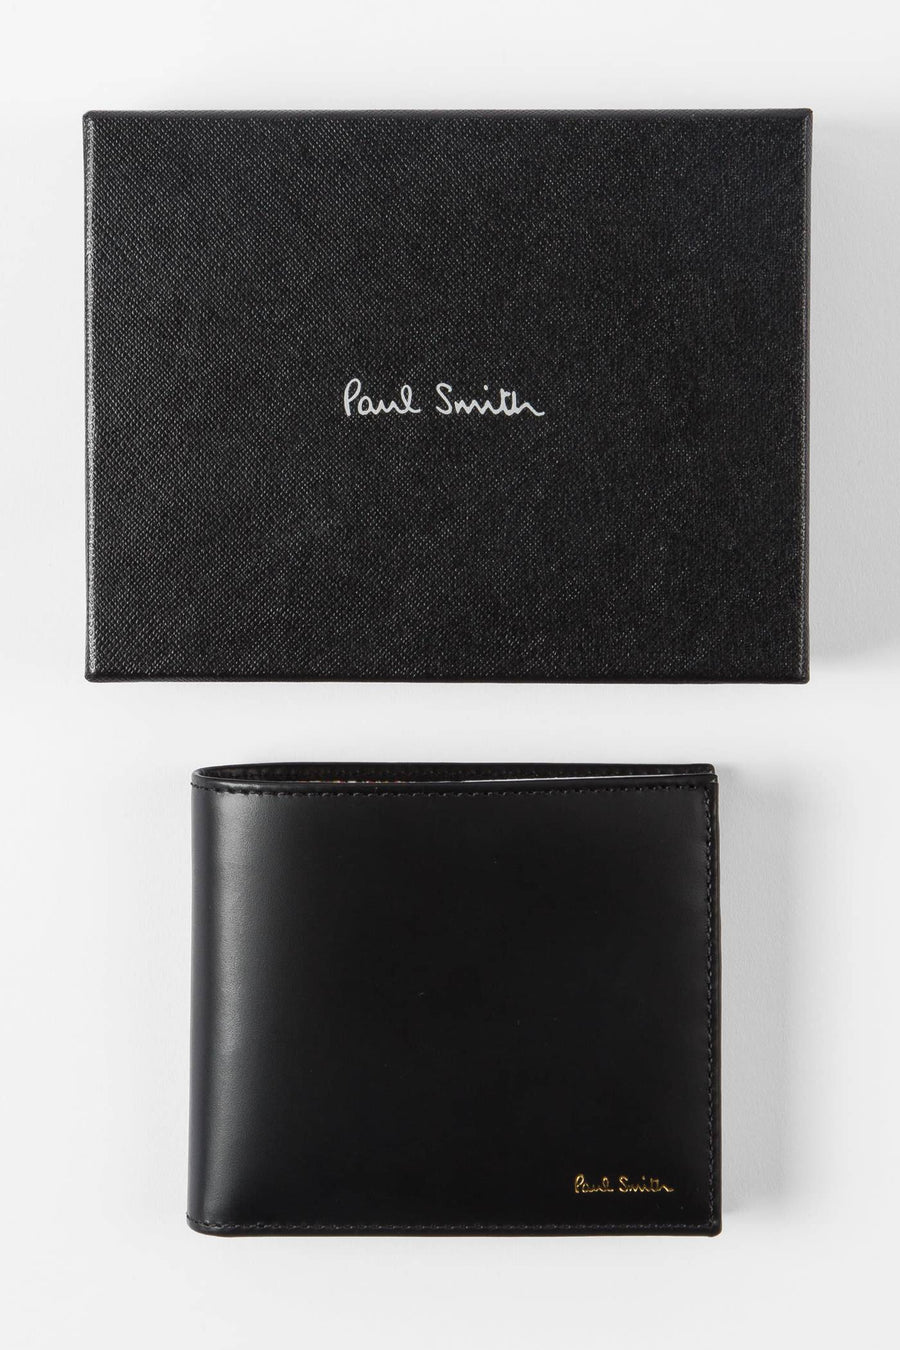 PAUL SMITH WALLET - 4833AMULTI